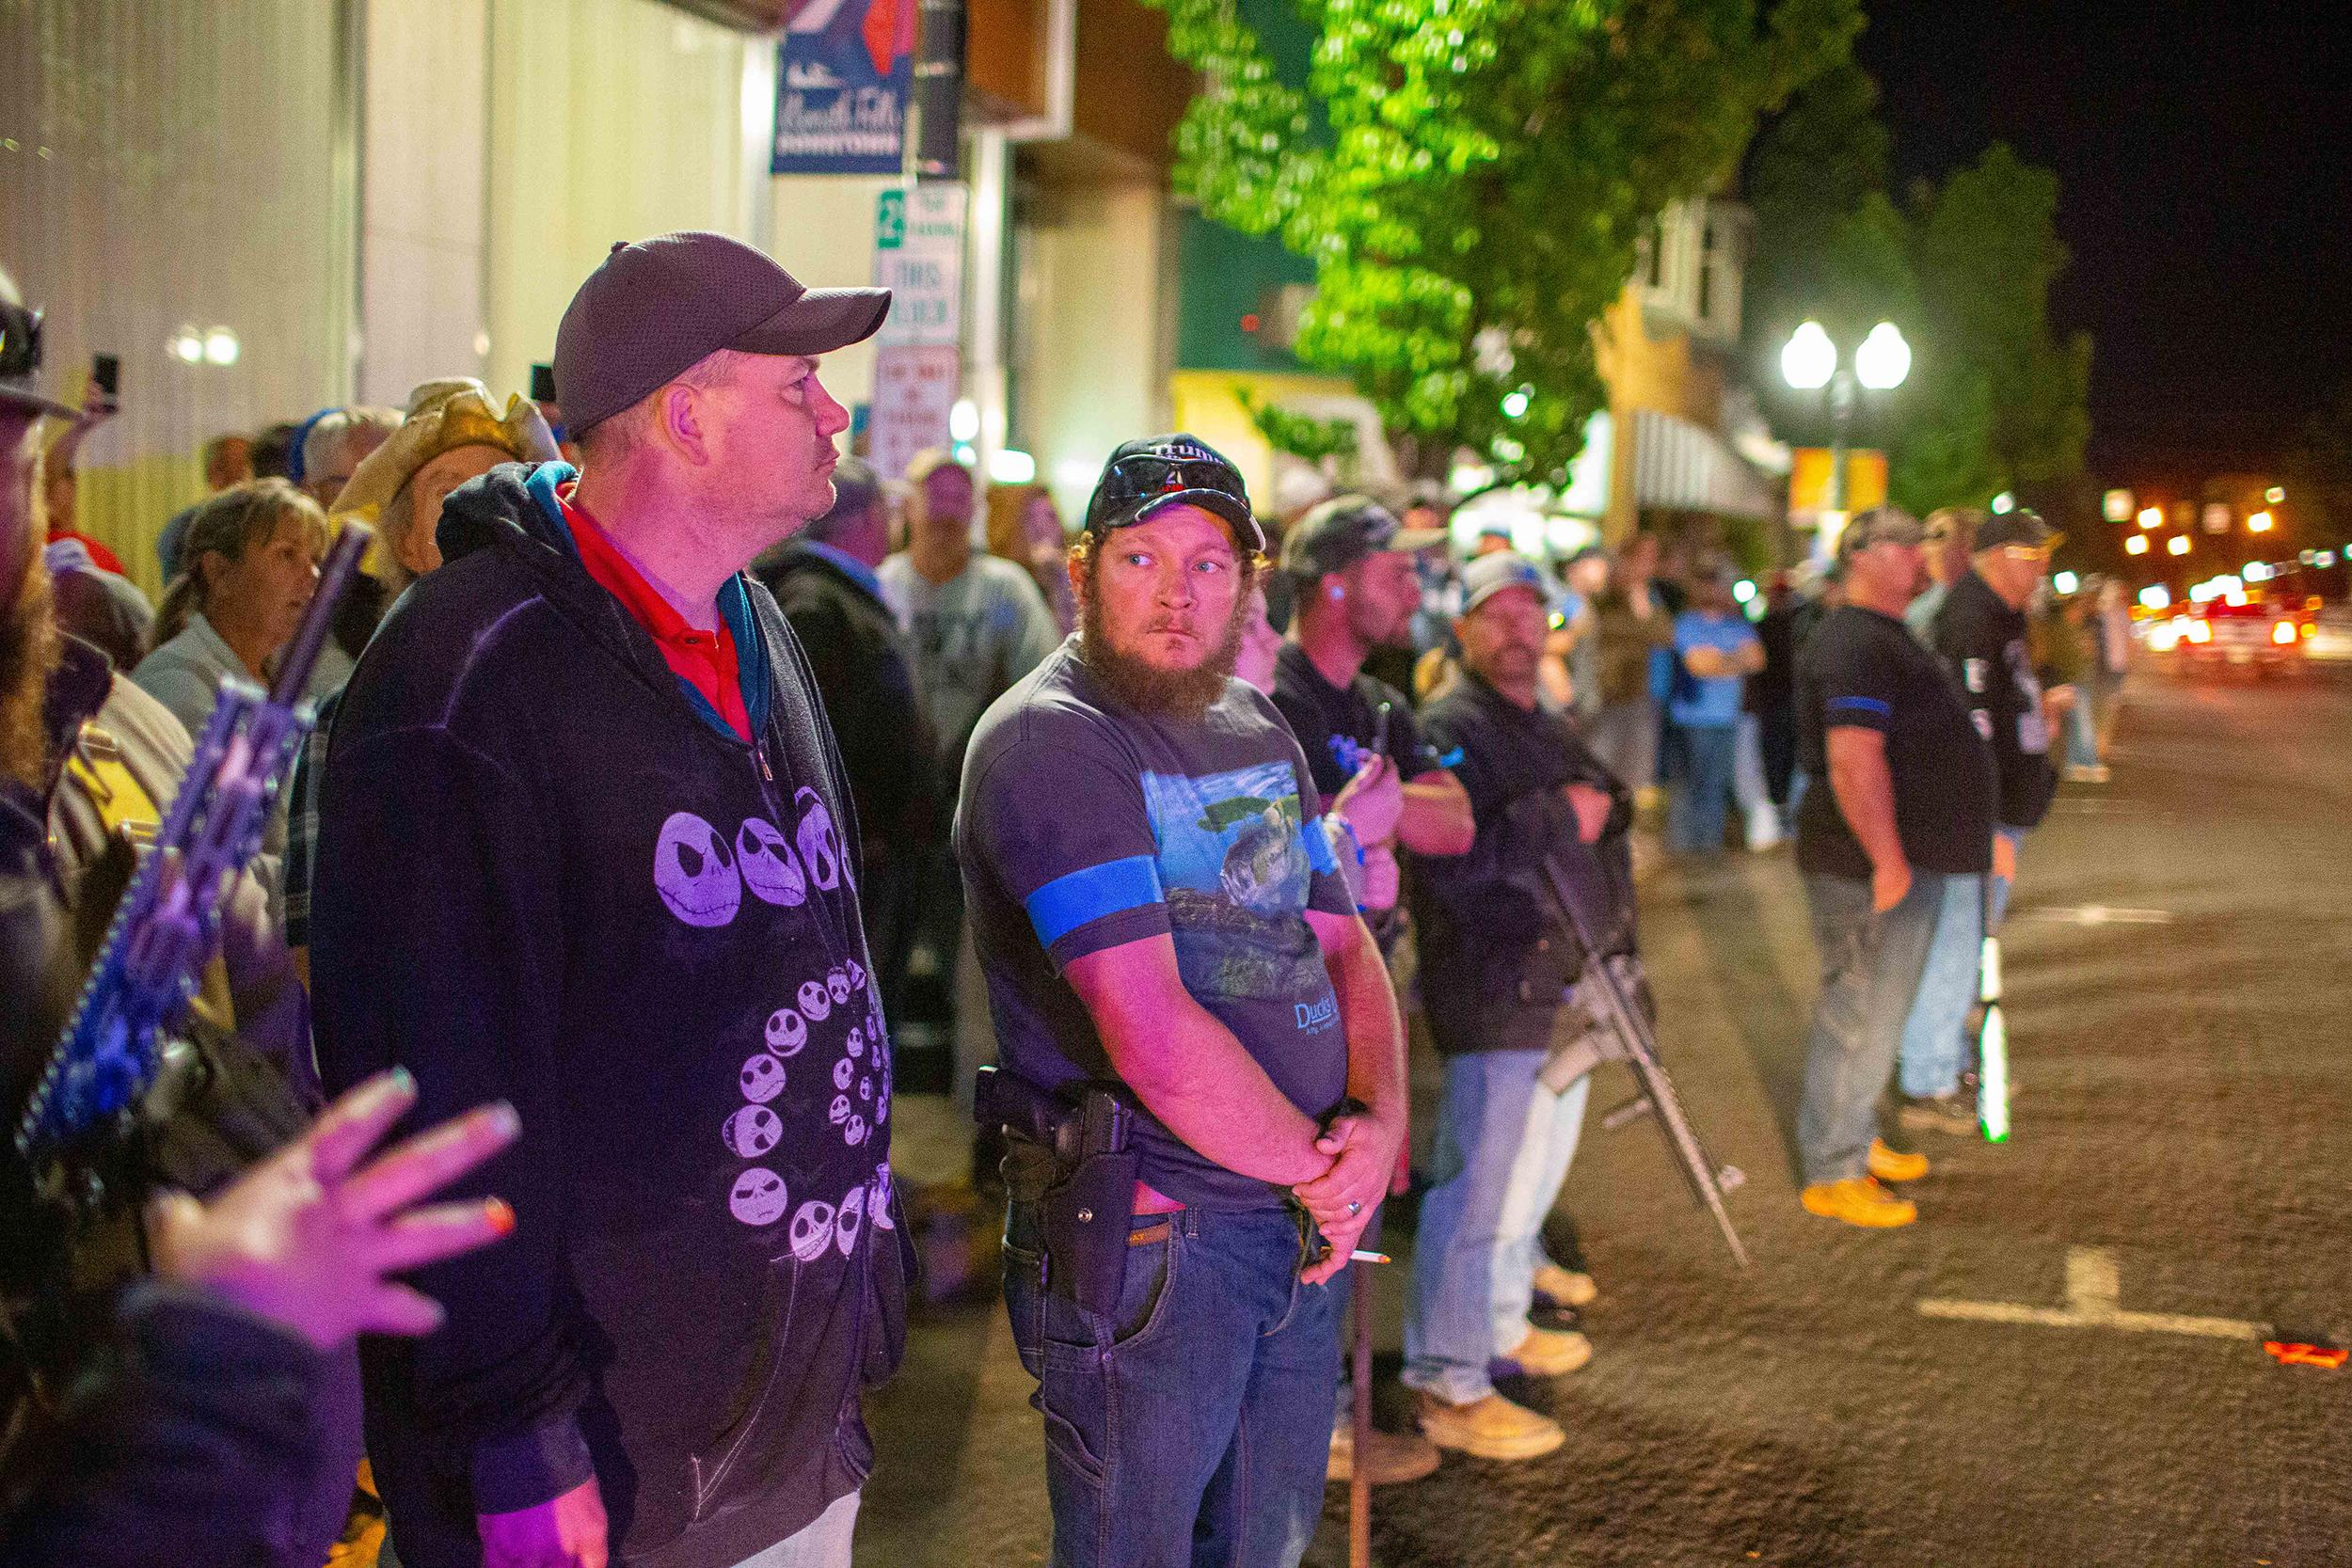 In Klamath Falls, Oregon, victory declared over antifa, which never showed up